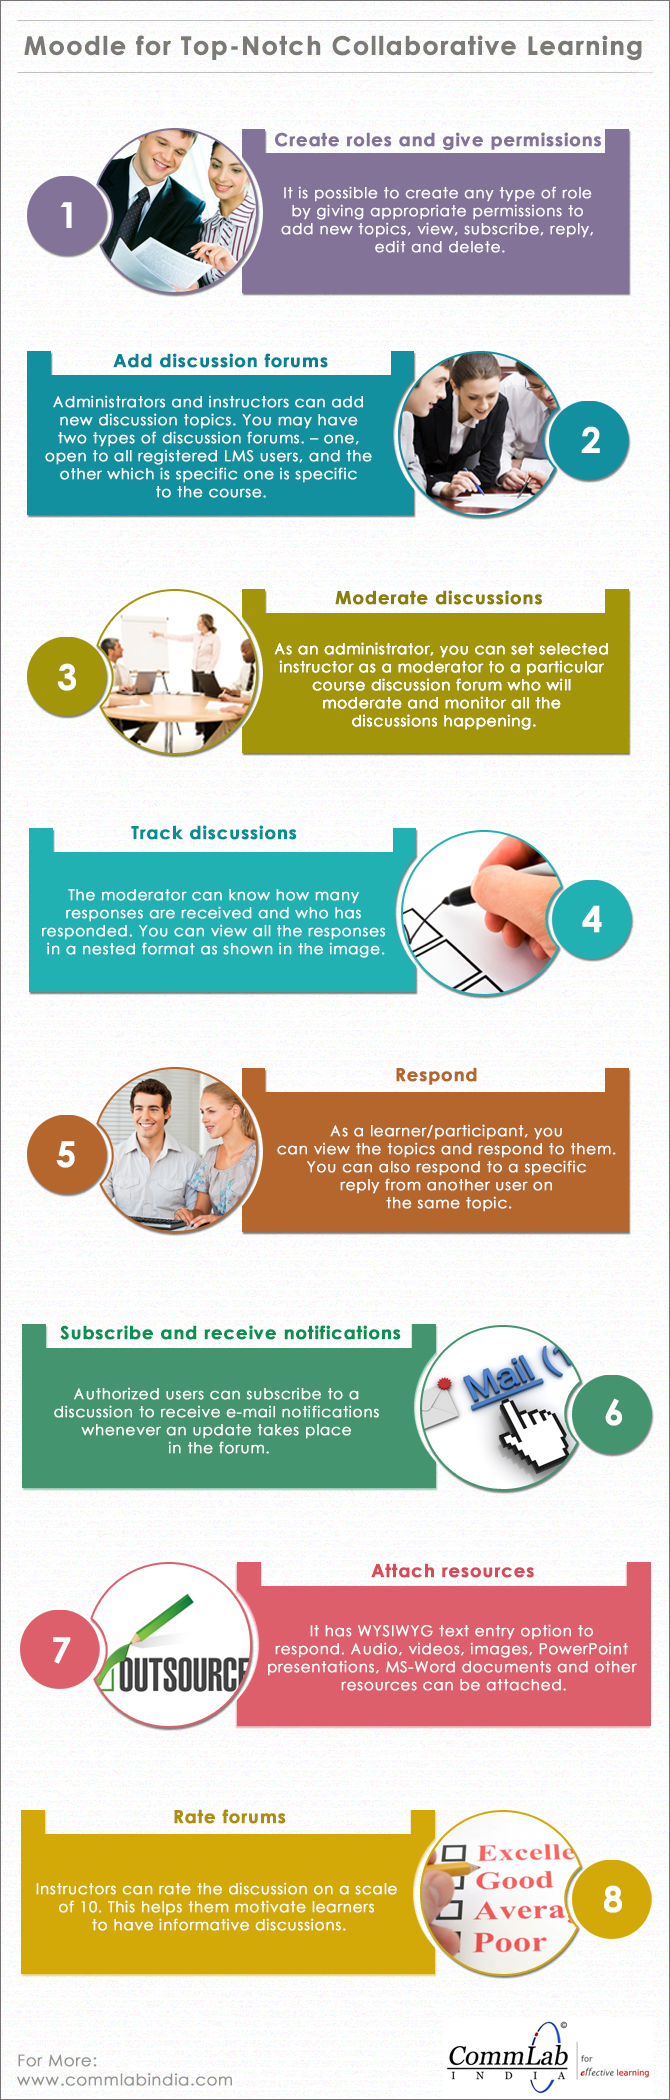 Collaborative Learning through Moodle [Infographic]